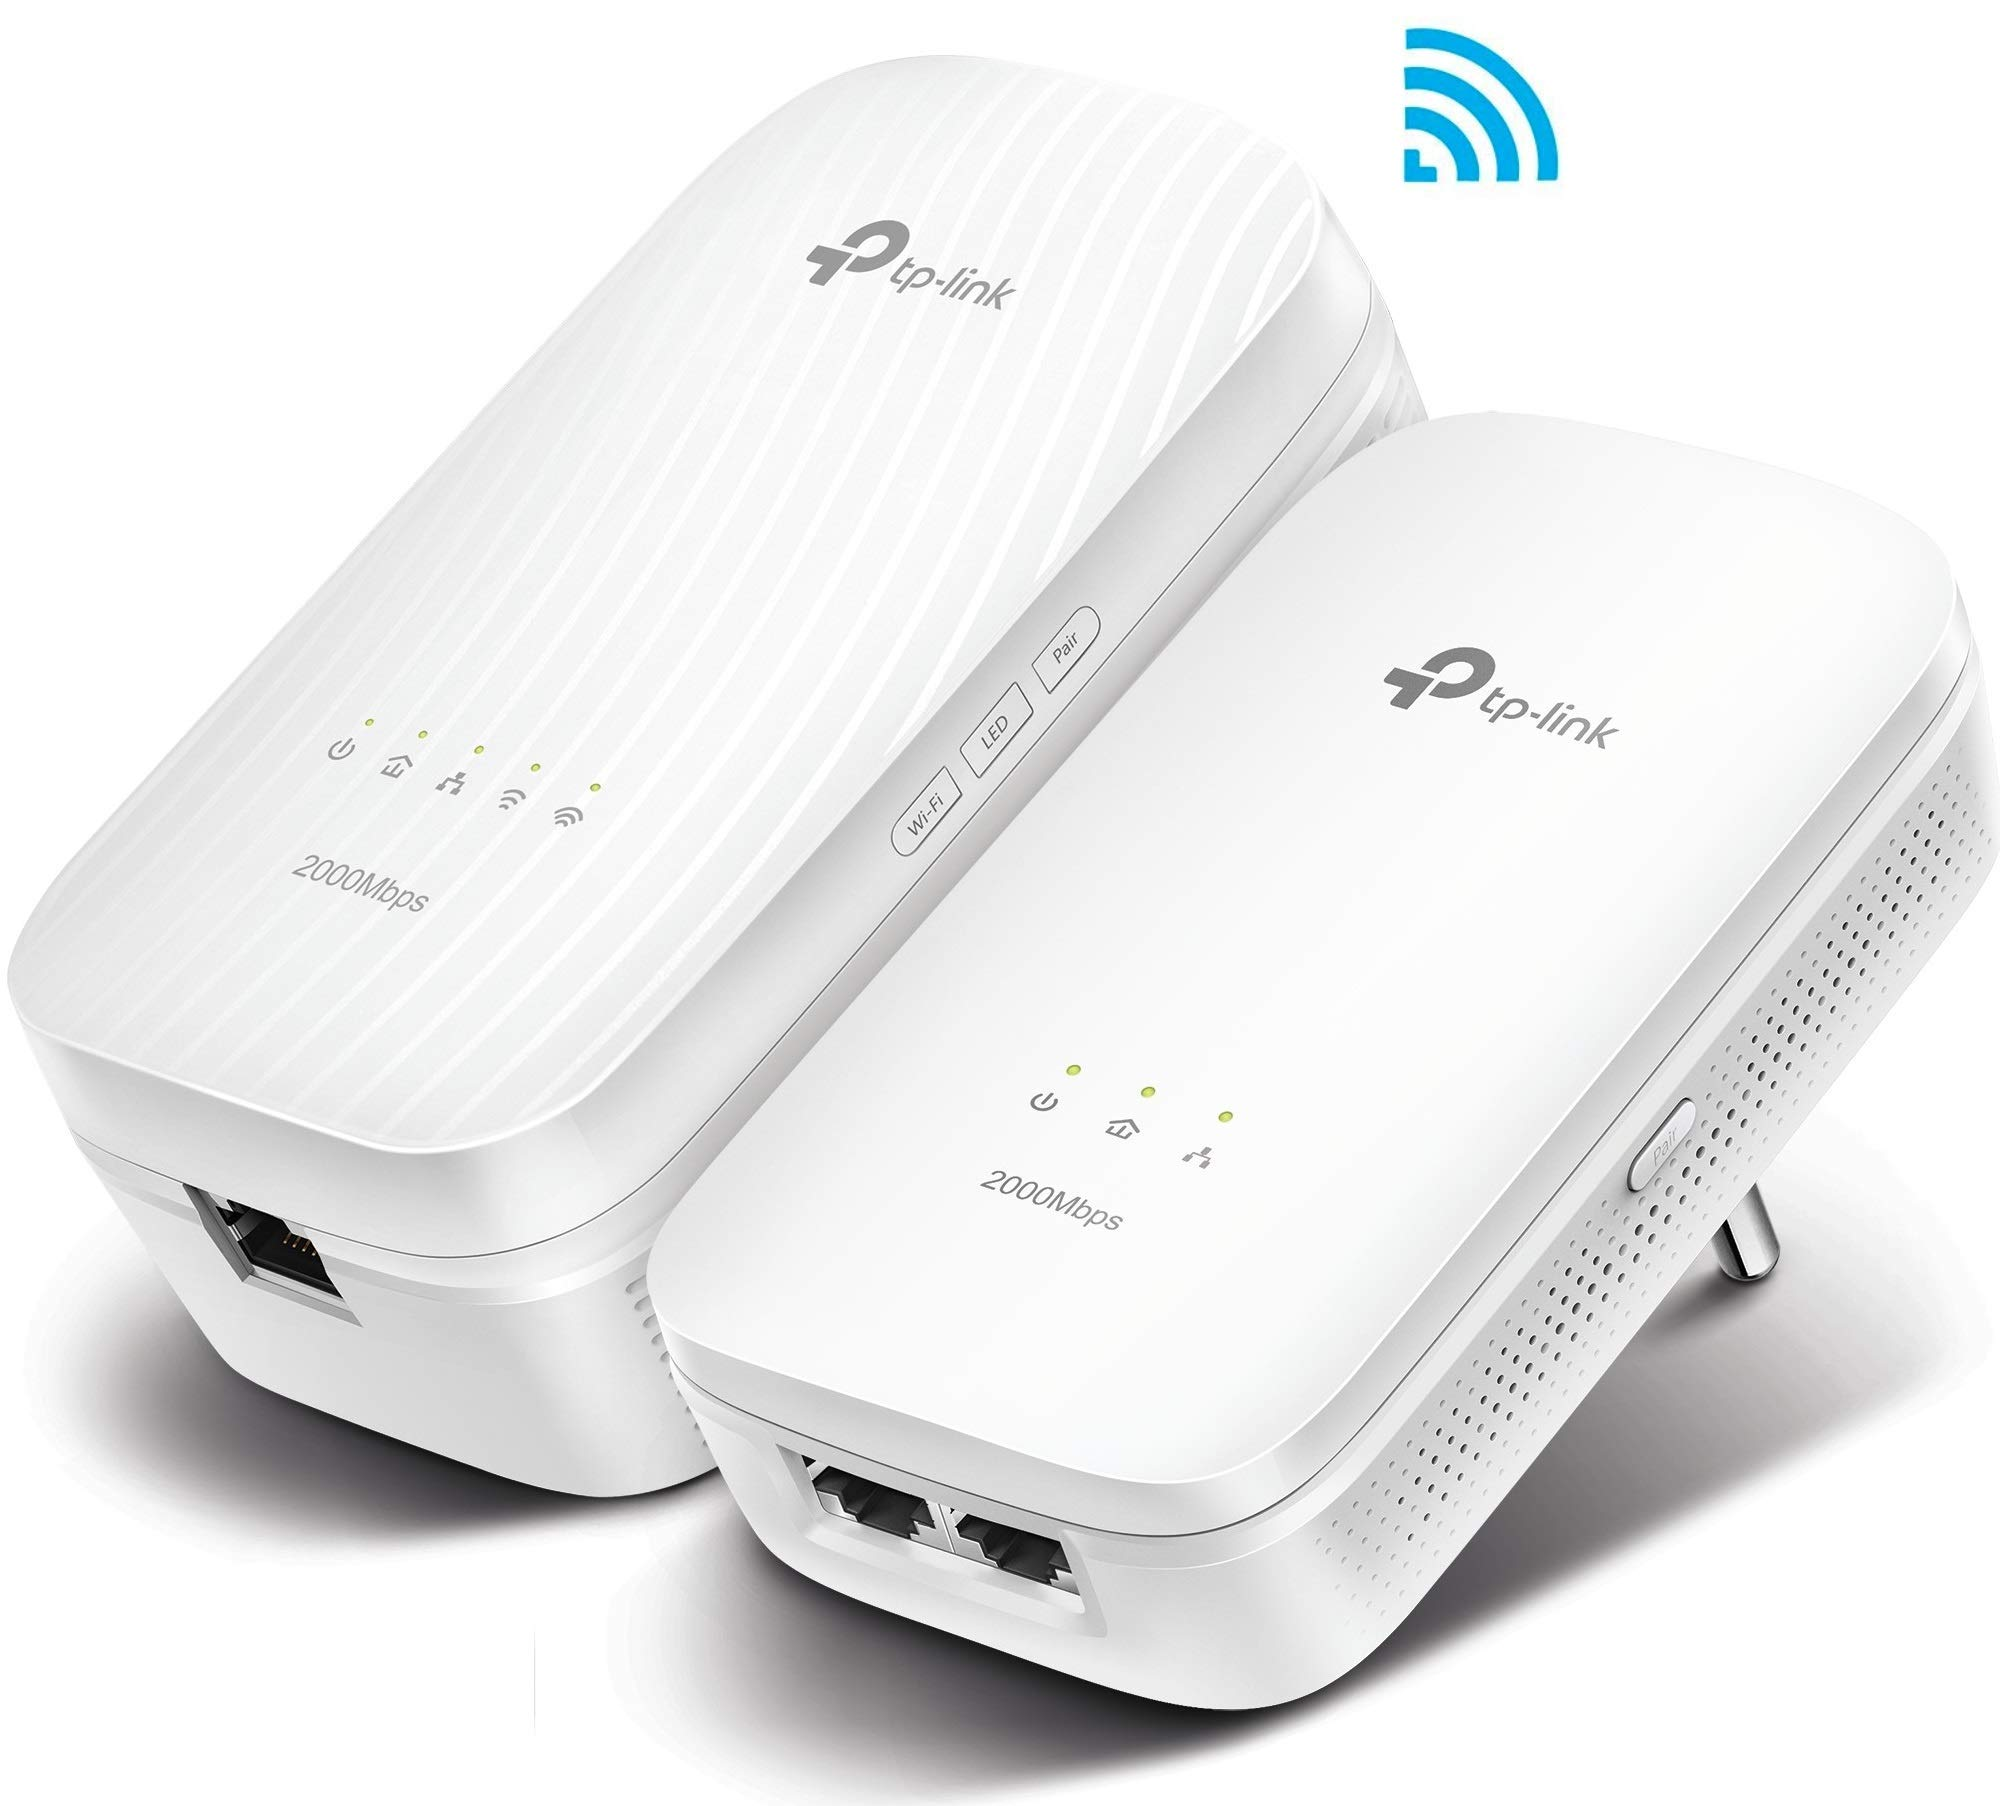 TP-Link AV2000 Gigabit Powerline AC Wi-Fi Kit TL-WPA9610 KIT (Renewed) by TP-LINK